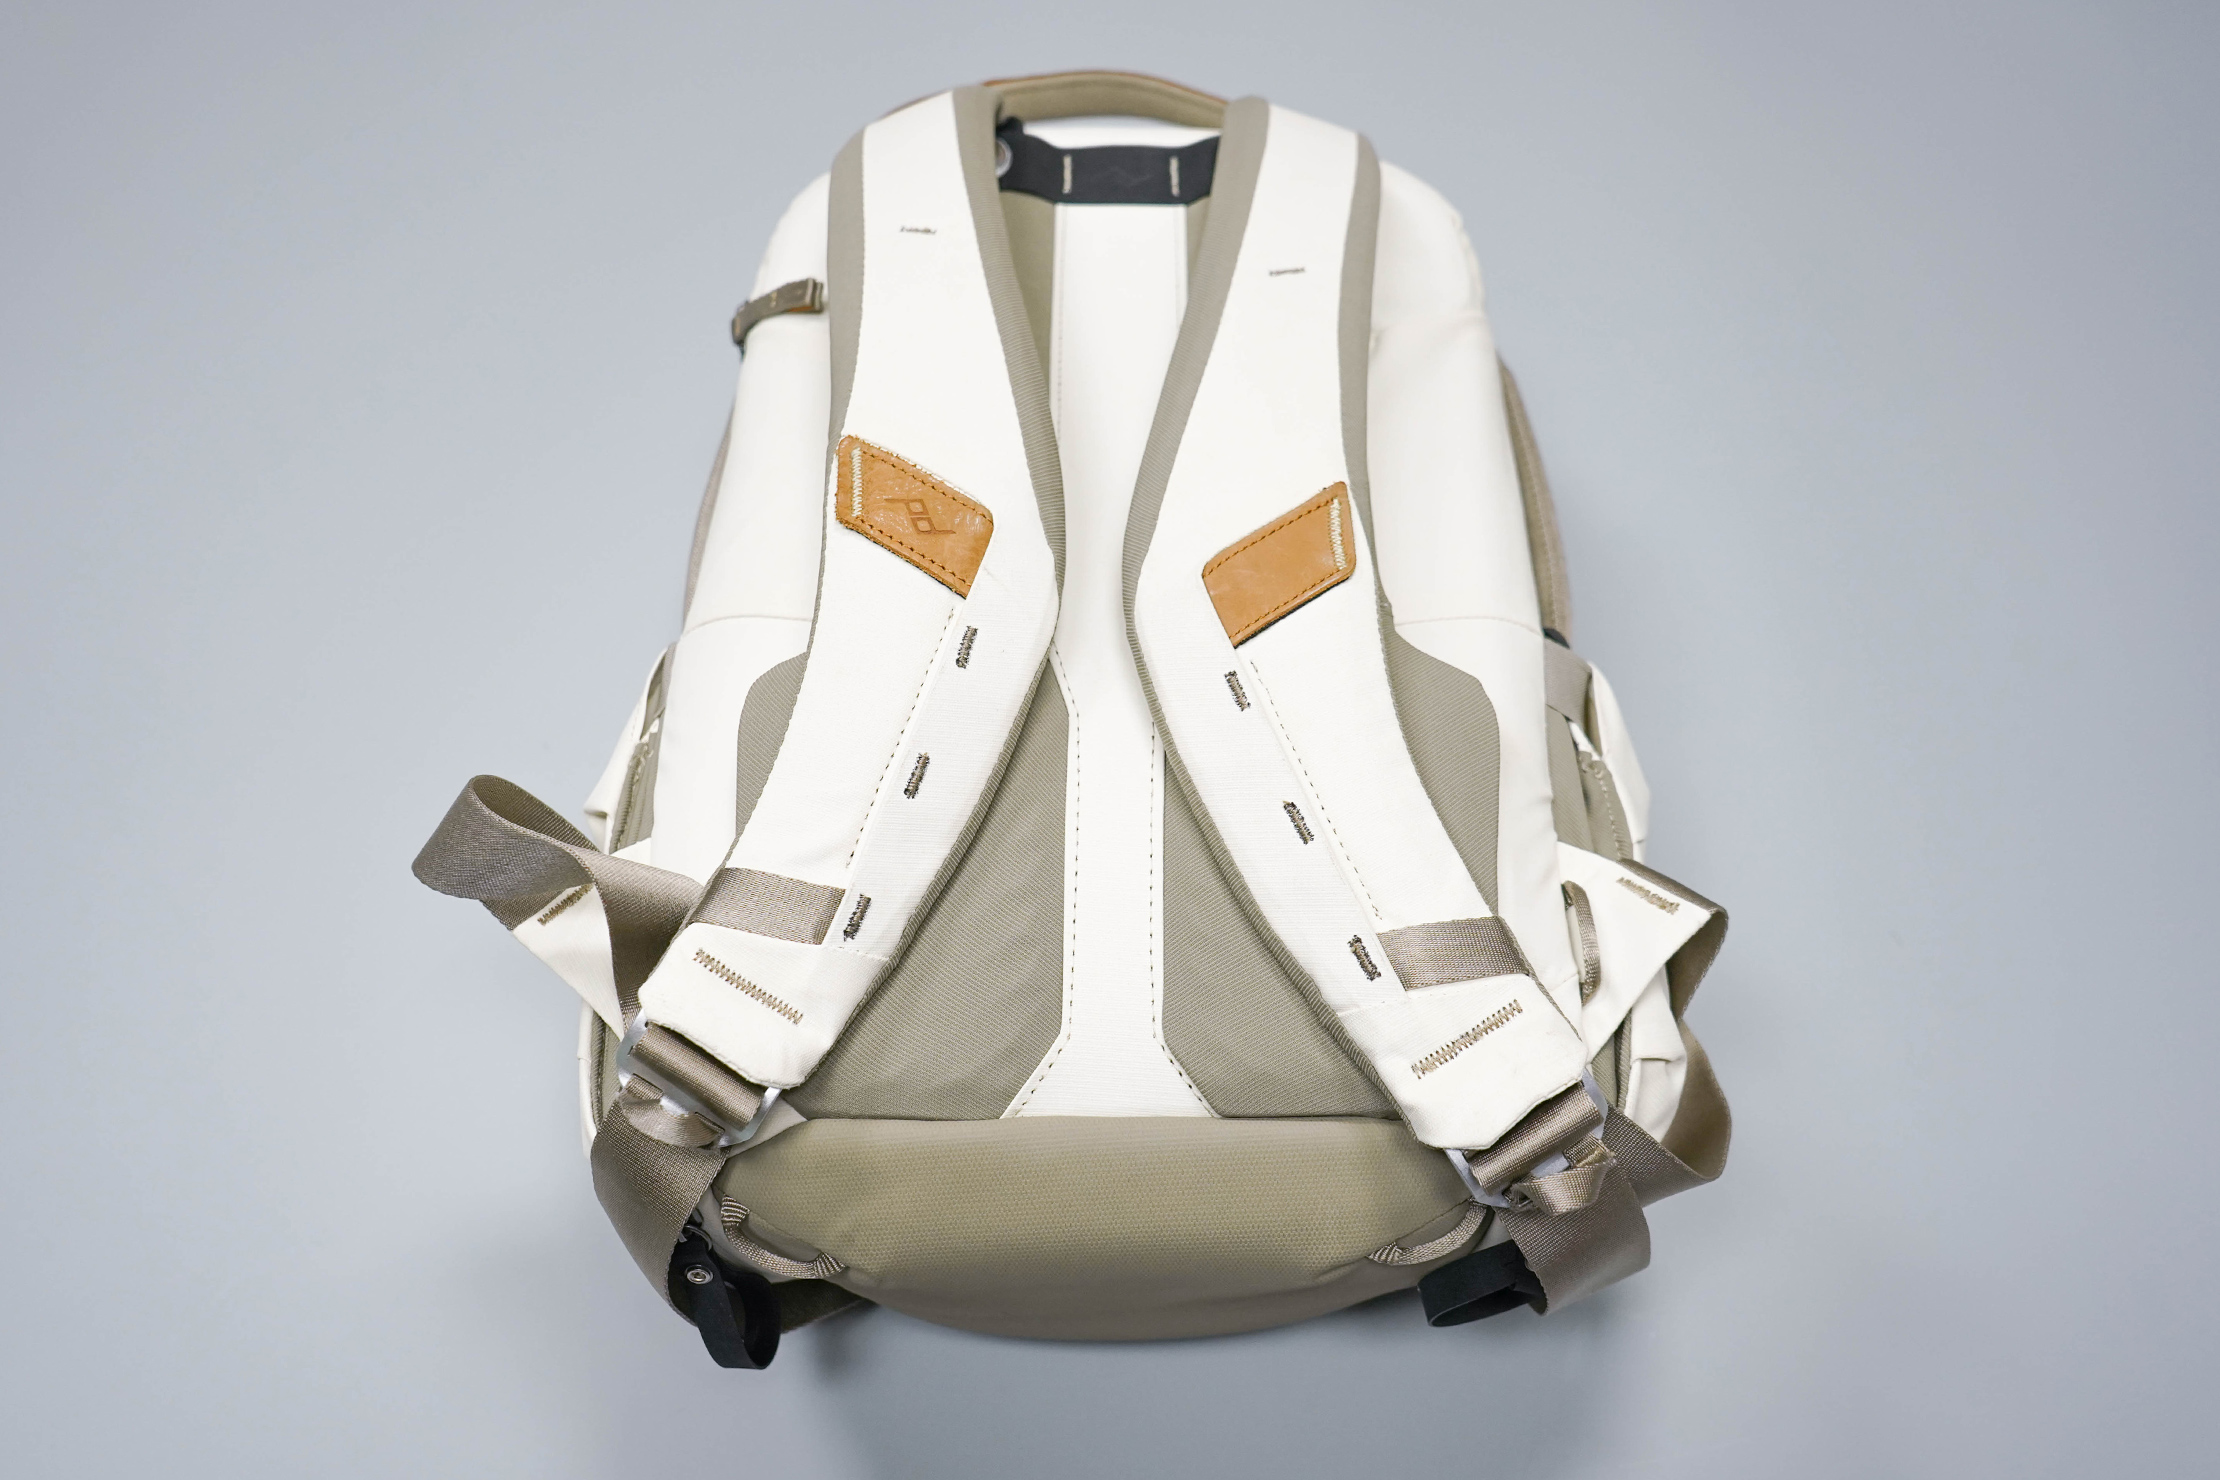 Peak Design Everyday Backpack Zip 15L Harness System